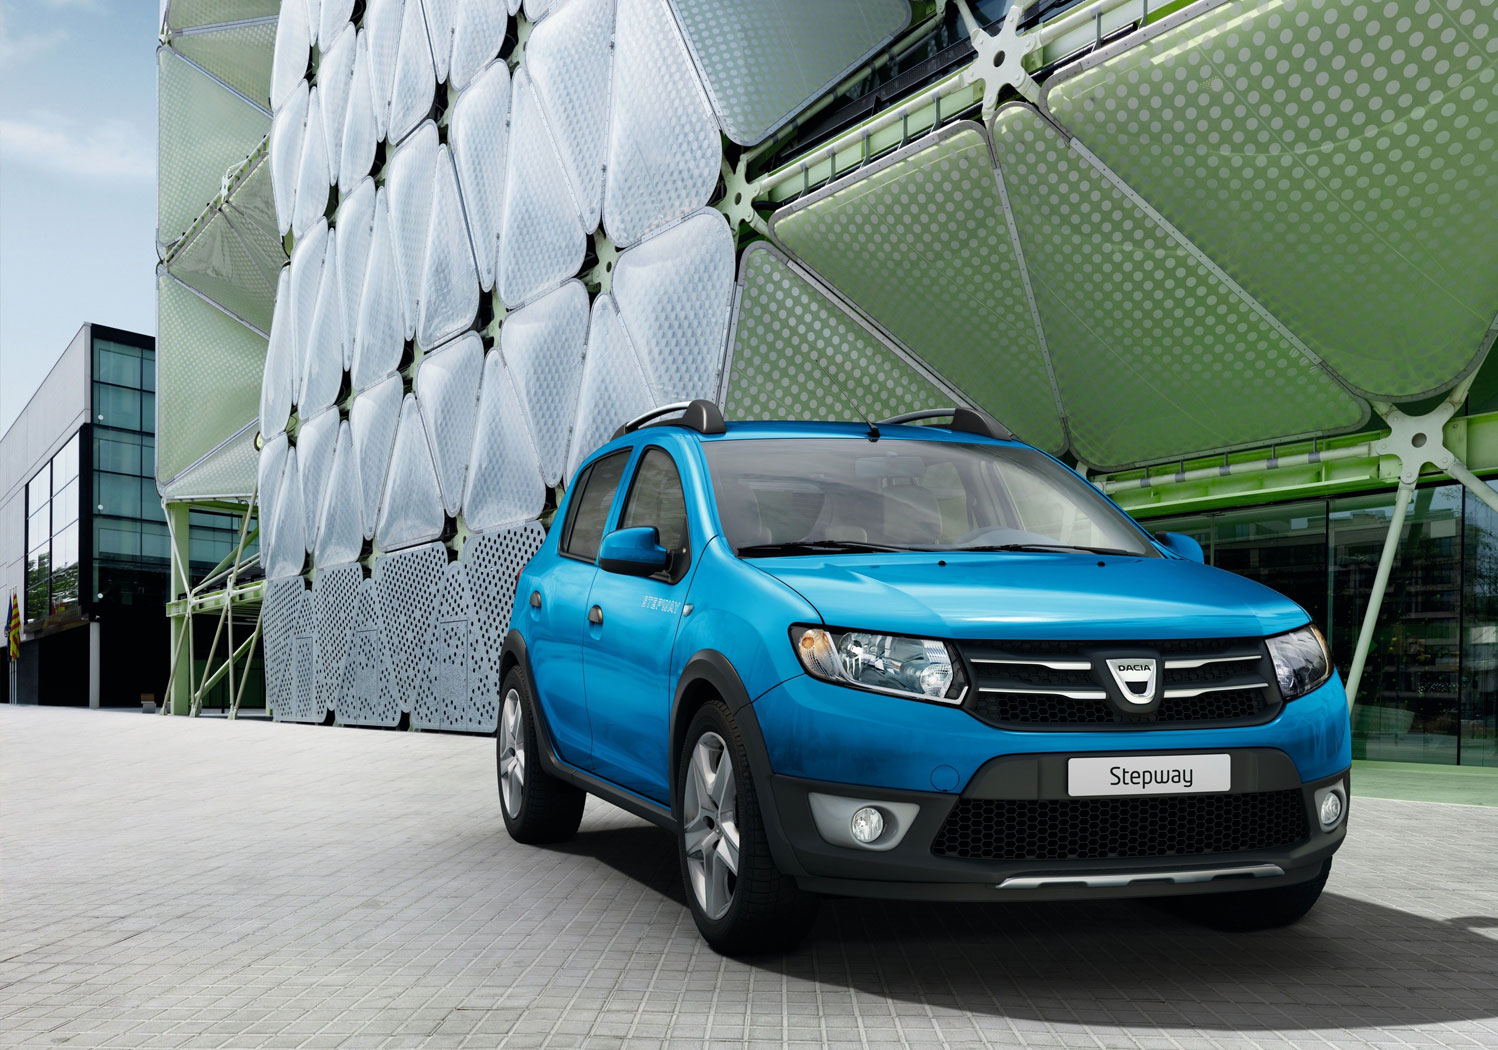 Dacia Introduces New Automatic Manual Easy-R Transmission